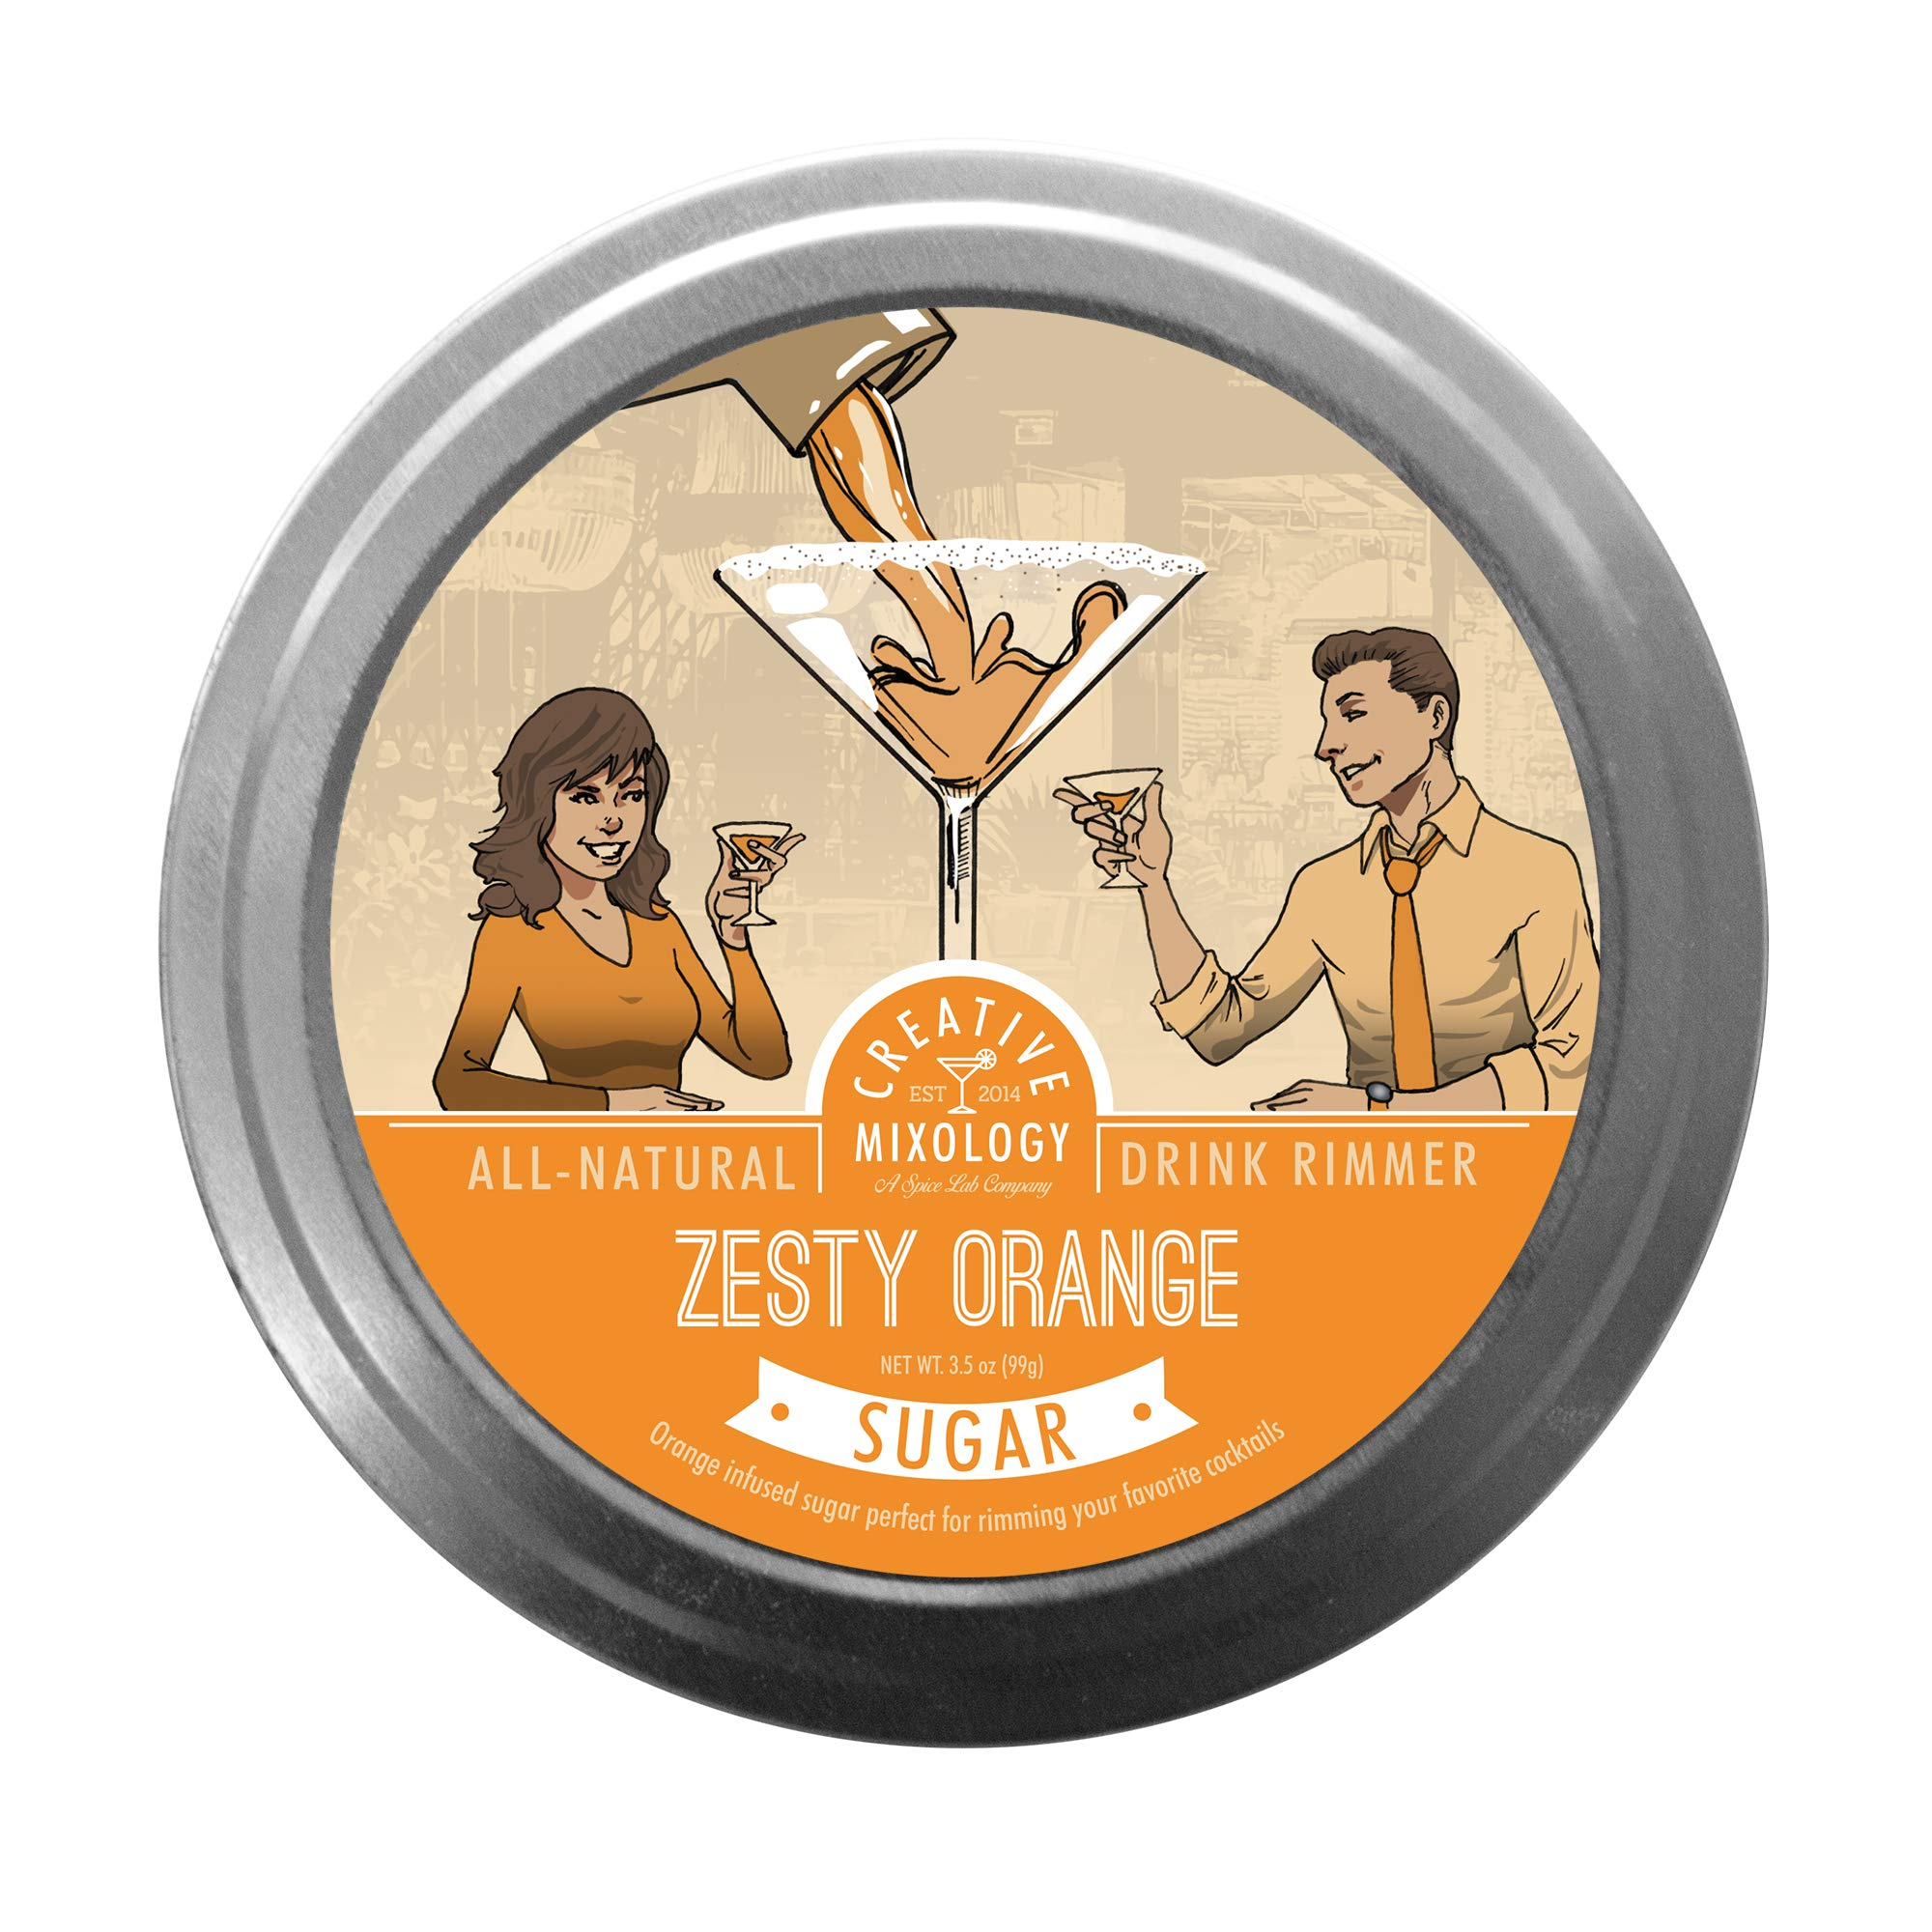 The Spice Lab All Natural Zesty Orange Sugar Cocktail Glass Rimmers for Martinis & Margaritas - 6 Pack - Gluten Free Non-GMO No MSG Brand by The Spice Lab (Image #1)